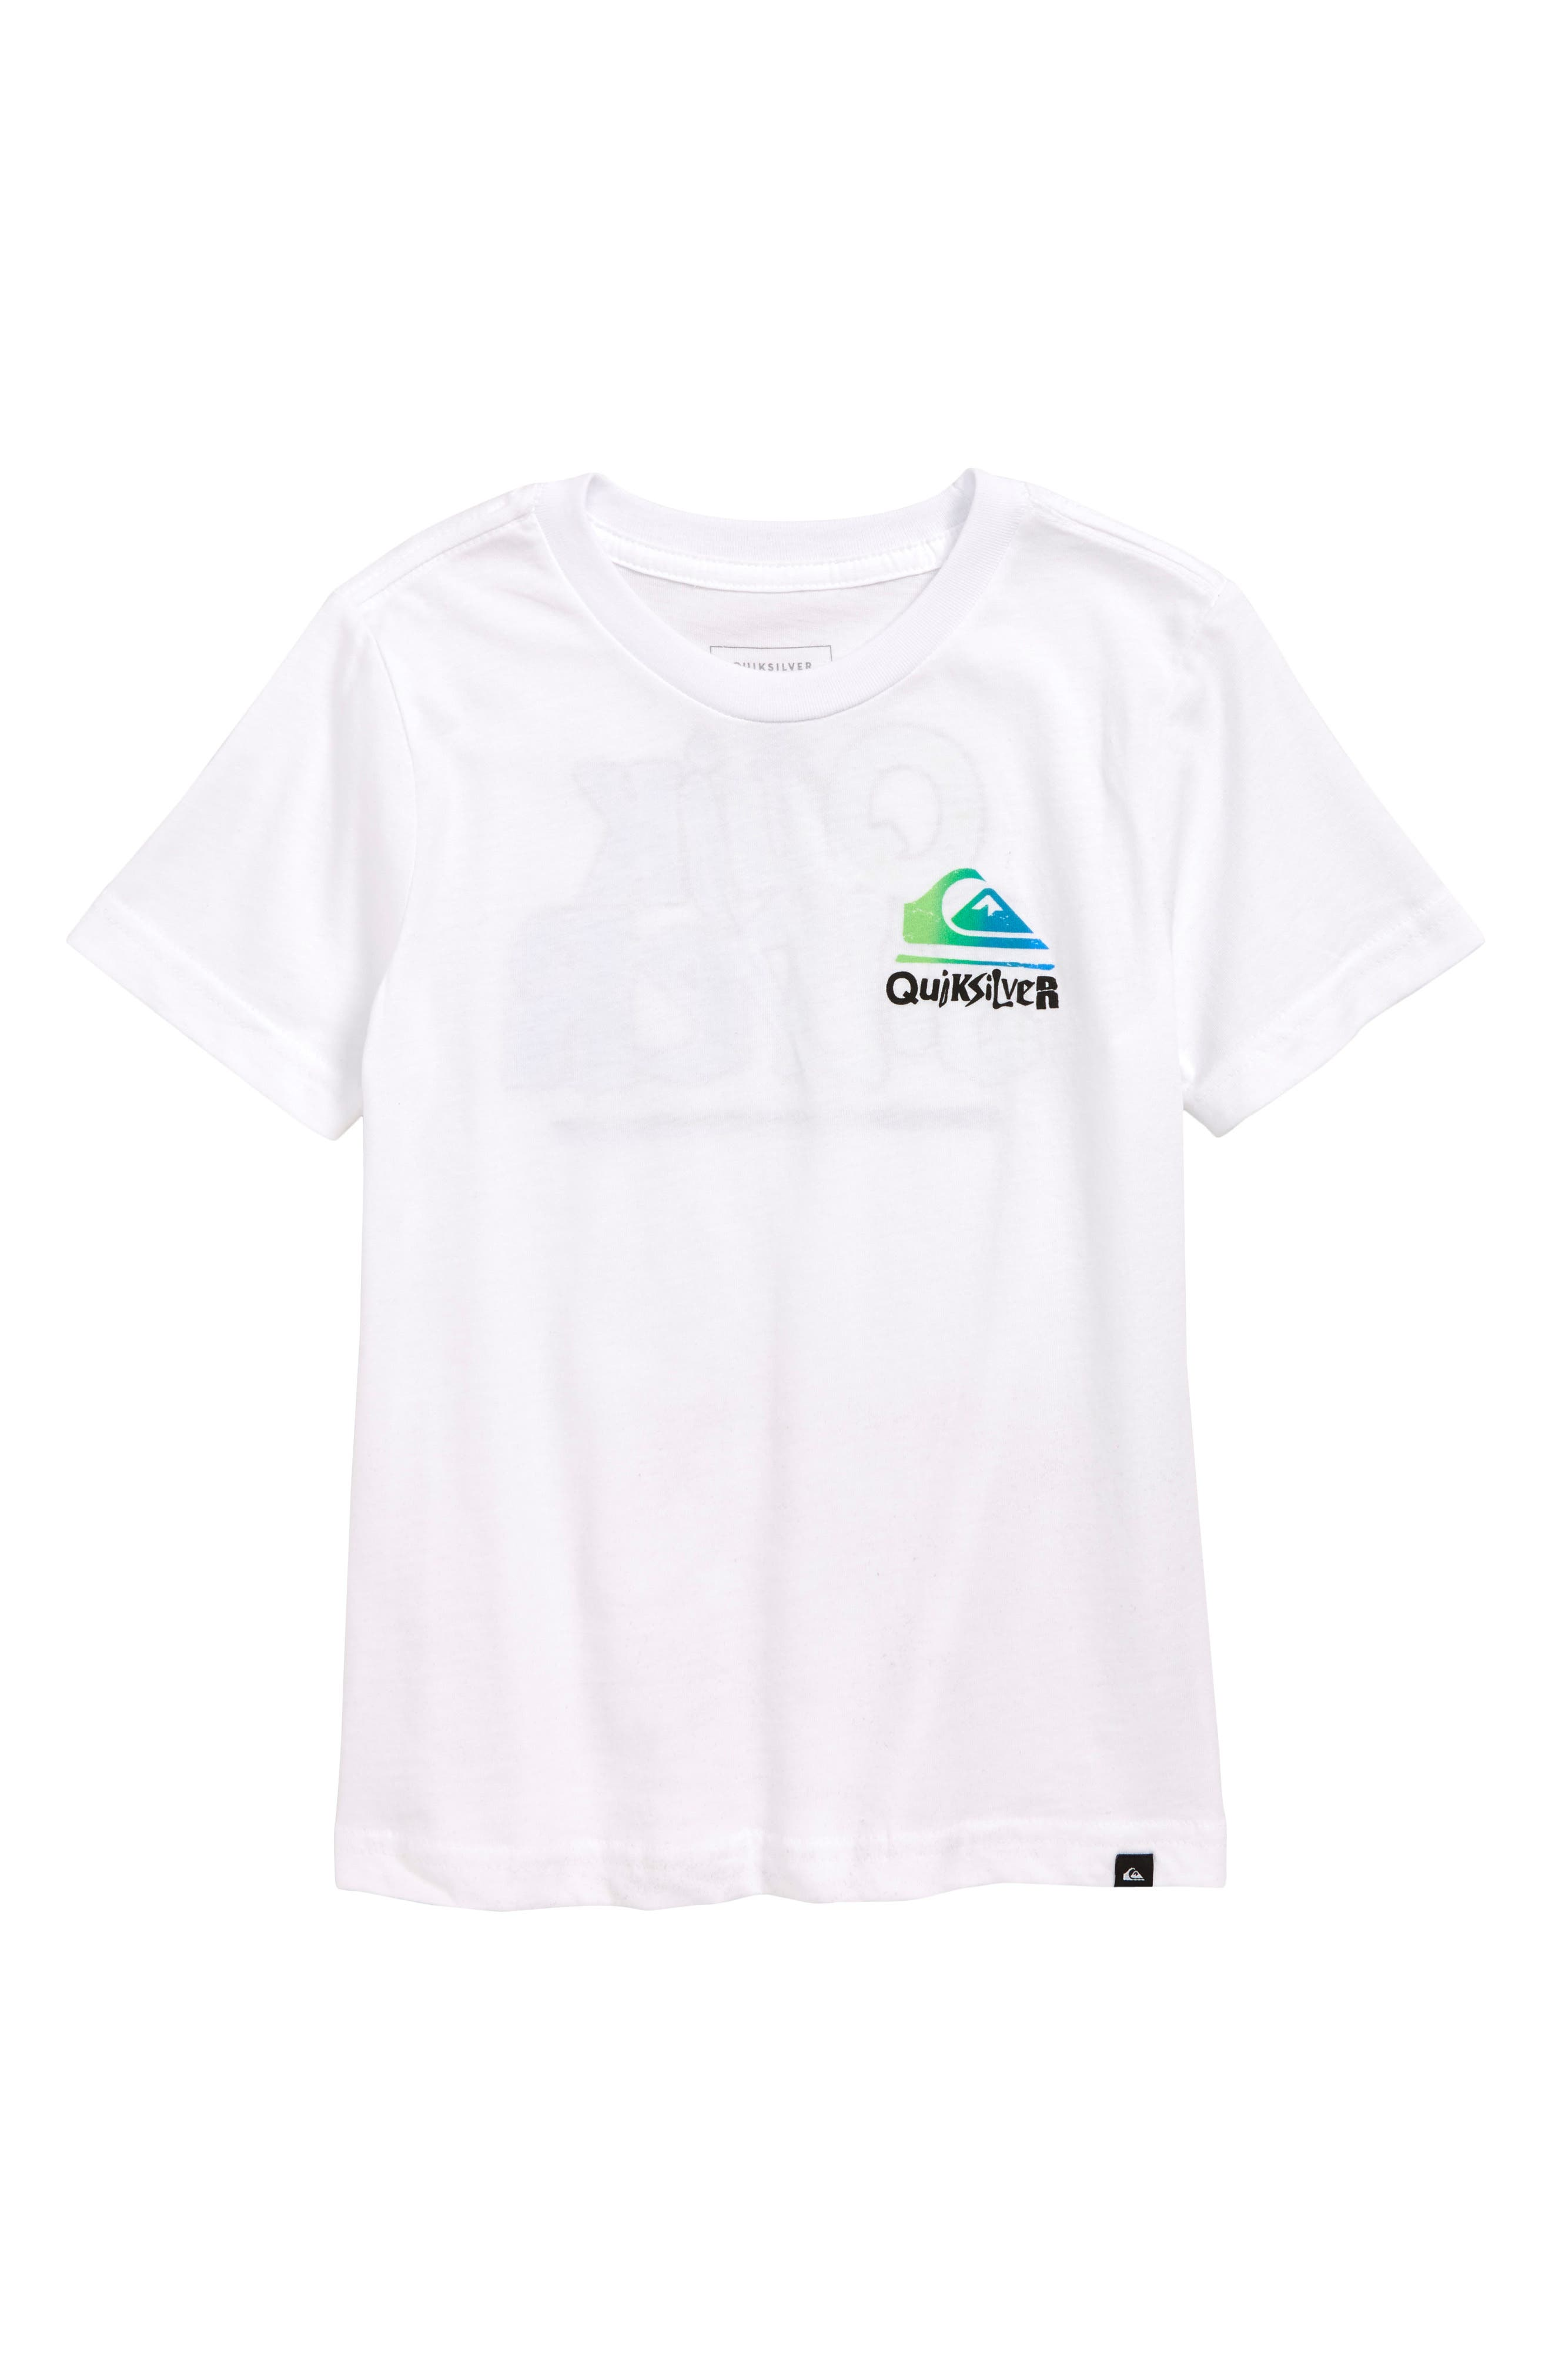 QUIKSILVER, Rebel Yell Graphic T-Shirt, Main thumbnail 1, color, WHITE